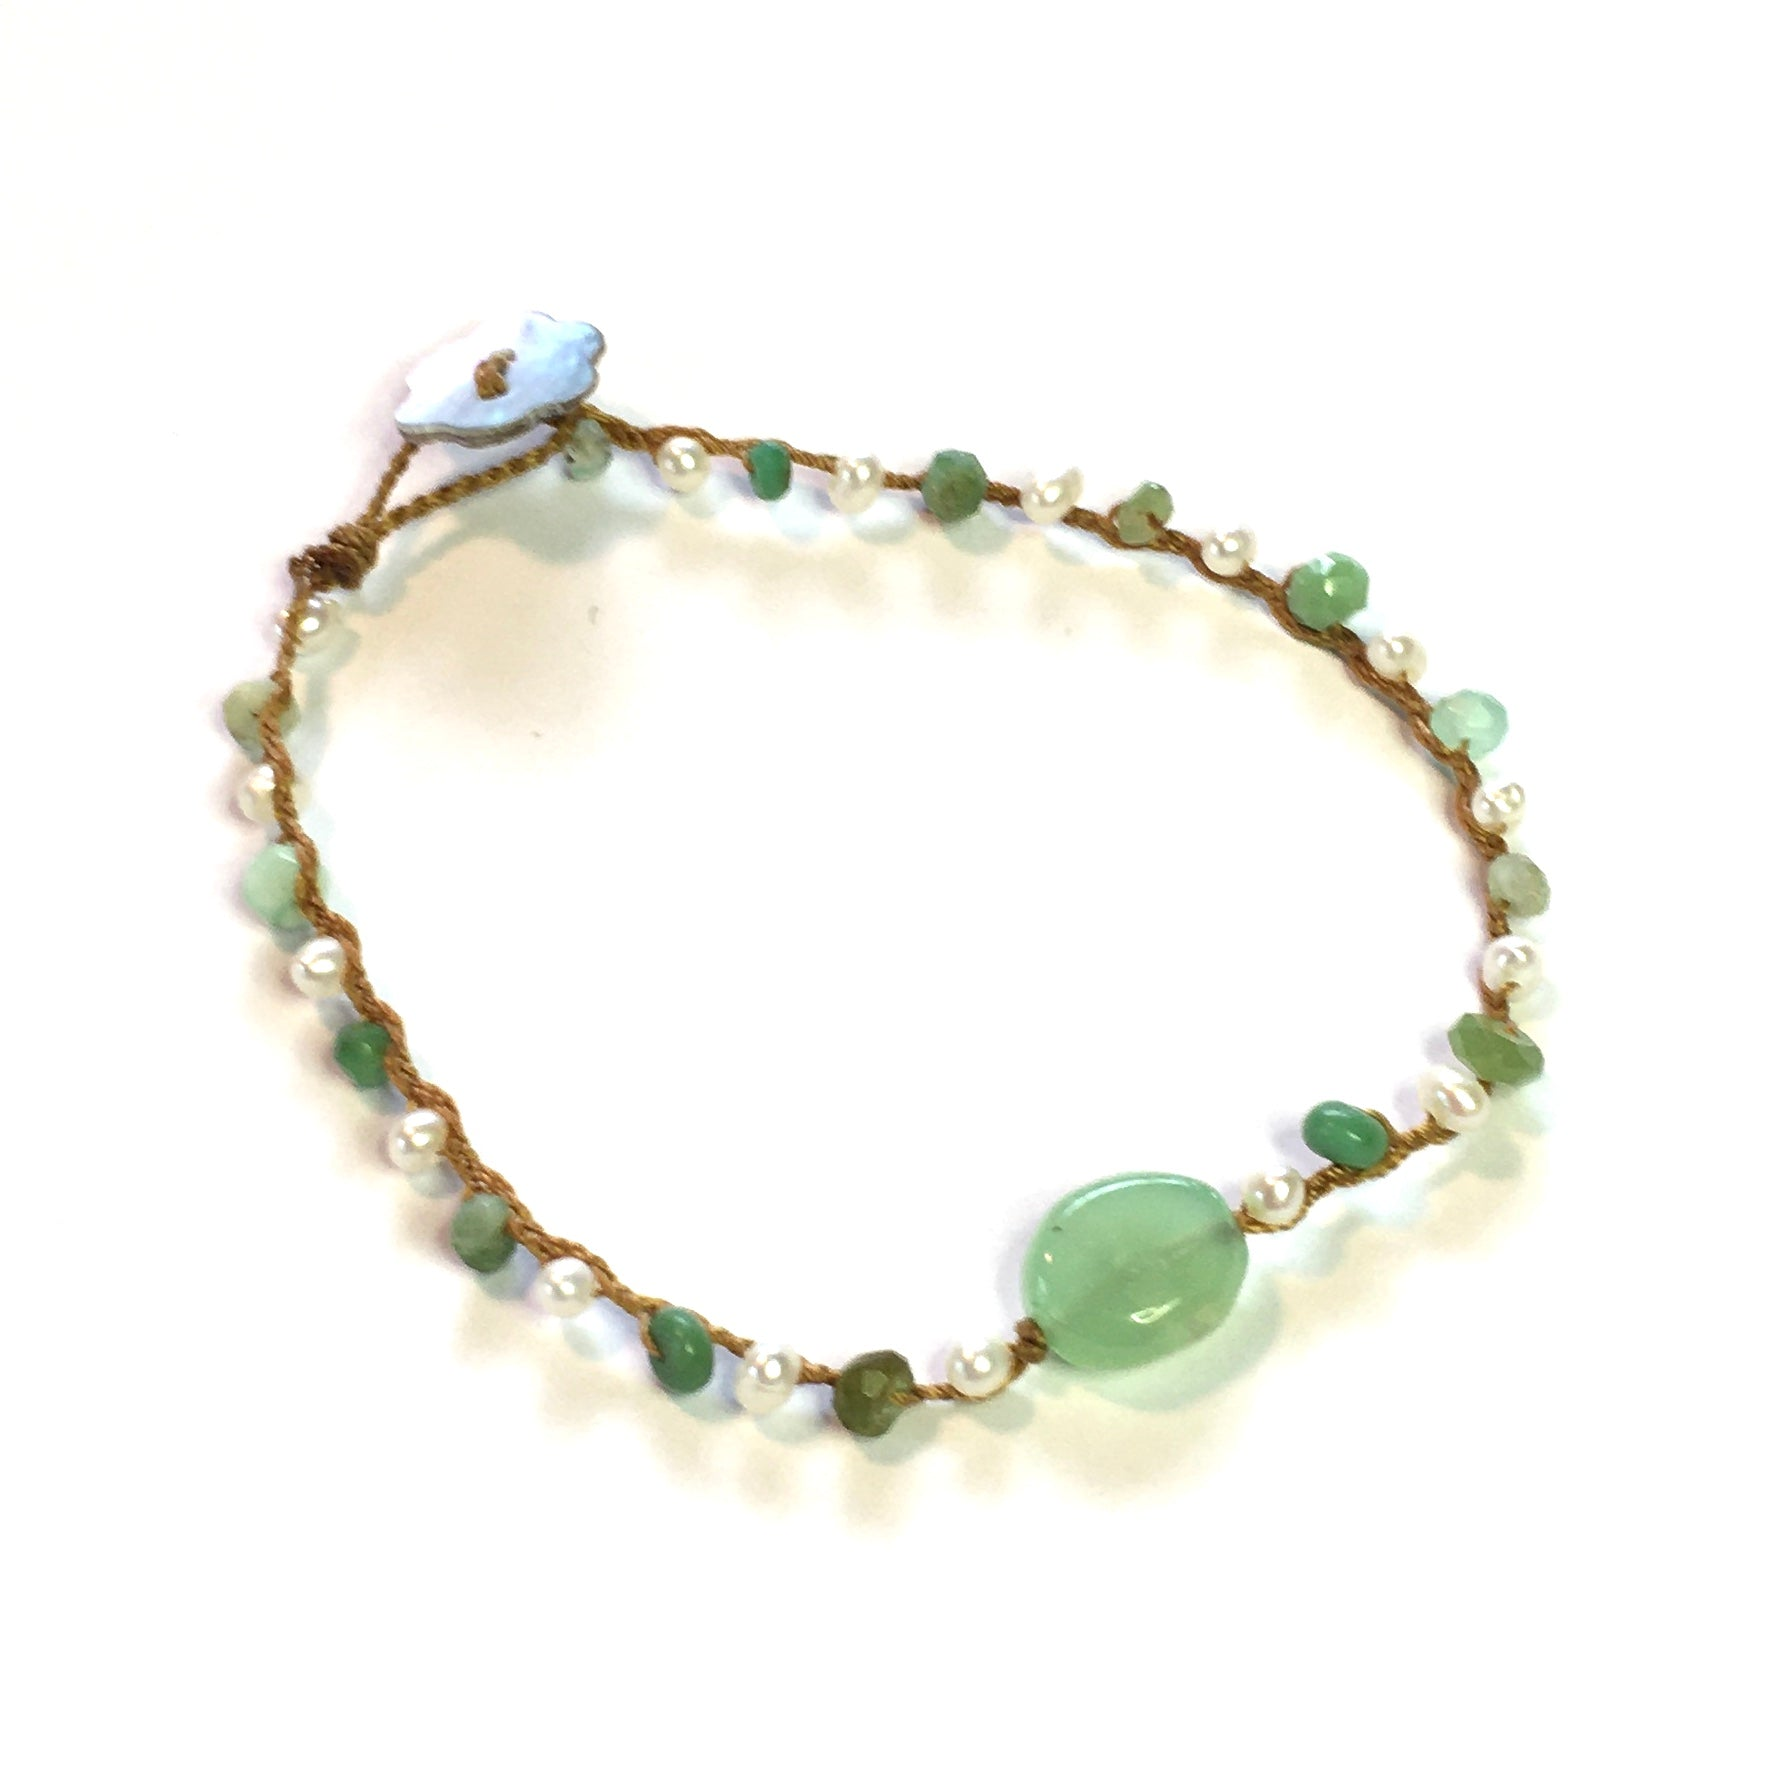 Smooth Chrysoprase with Chrysoprase and Pearls